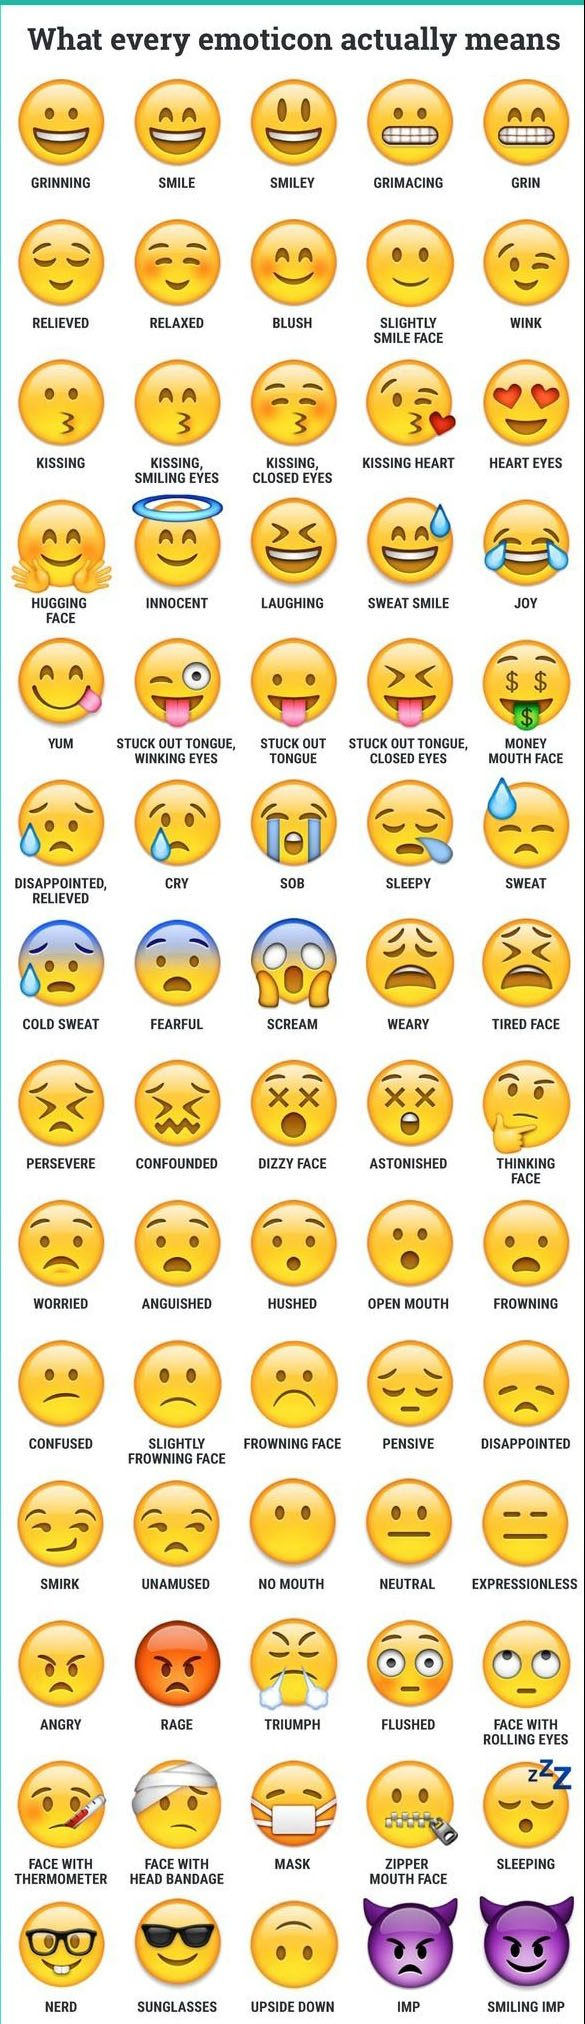 actual meaning of Whatsapp emojis